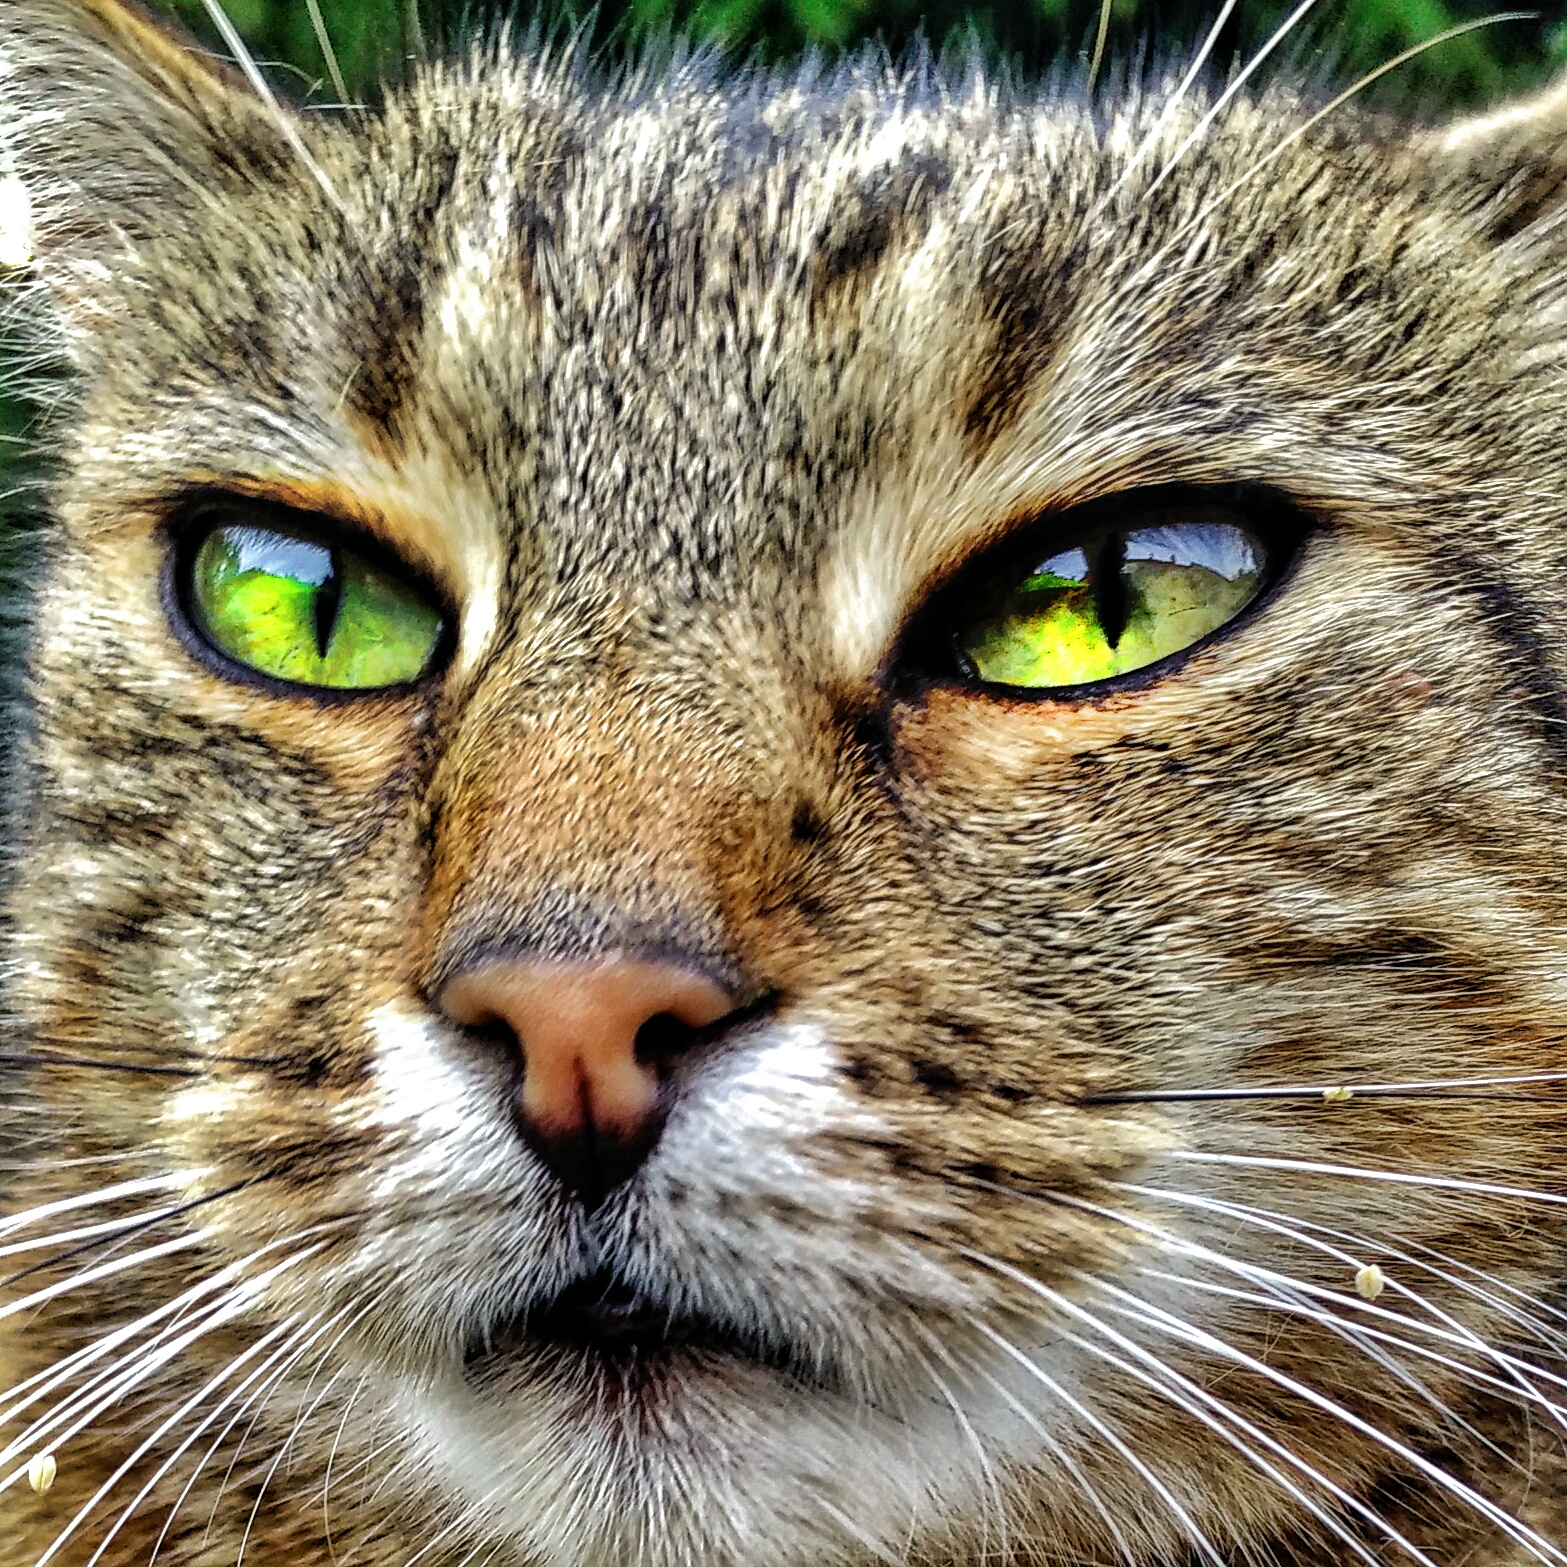 tan cat face with bright green eyes